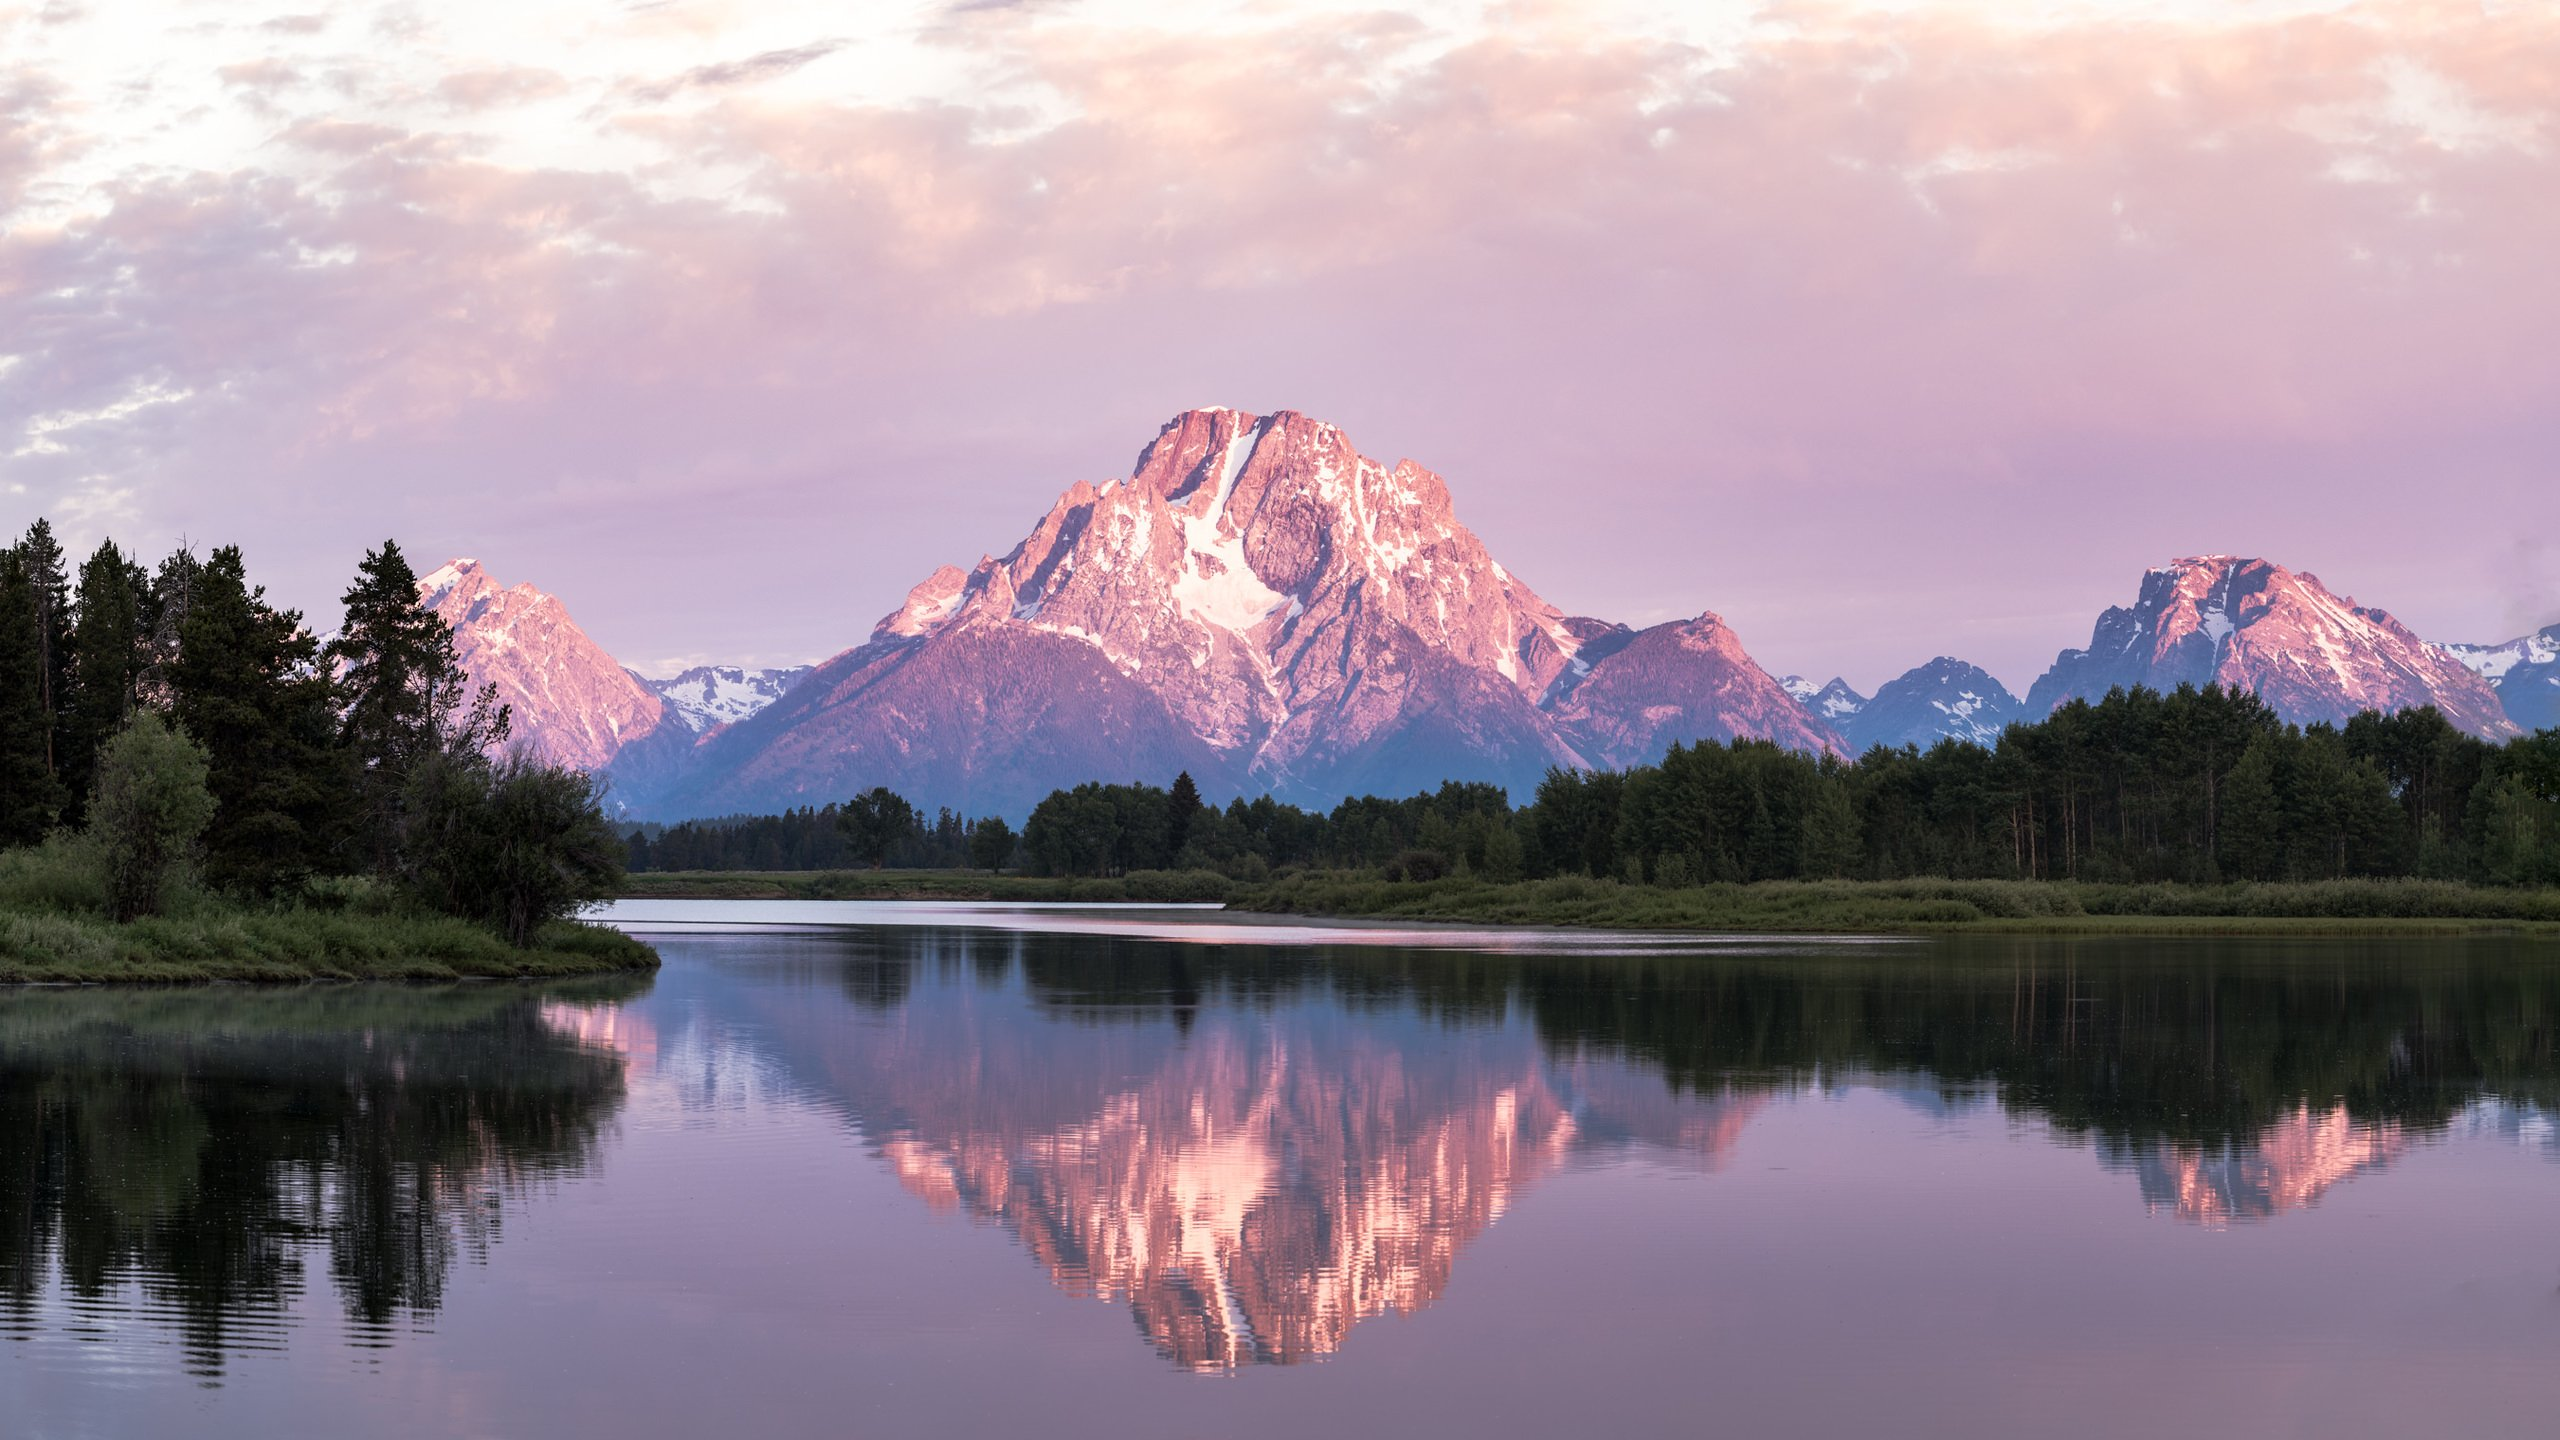 Tetons 4k Wallpapers For Your Desktop Or Mobile Screen Free And